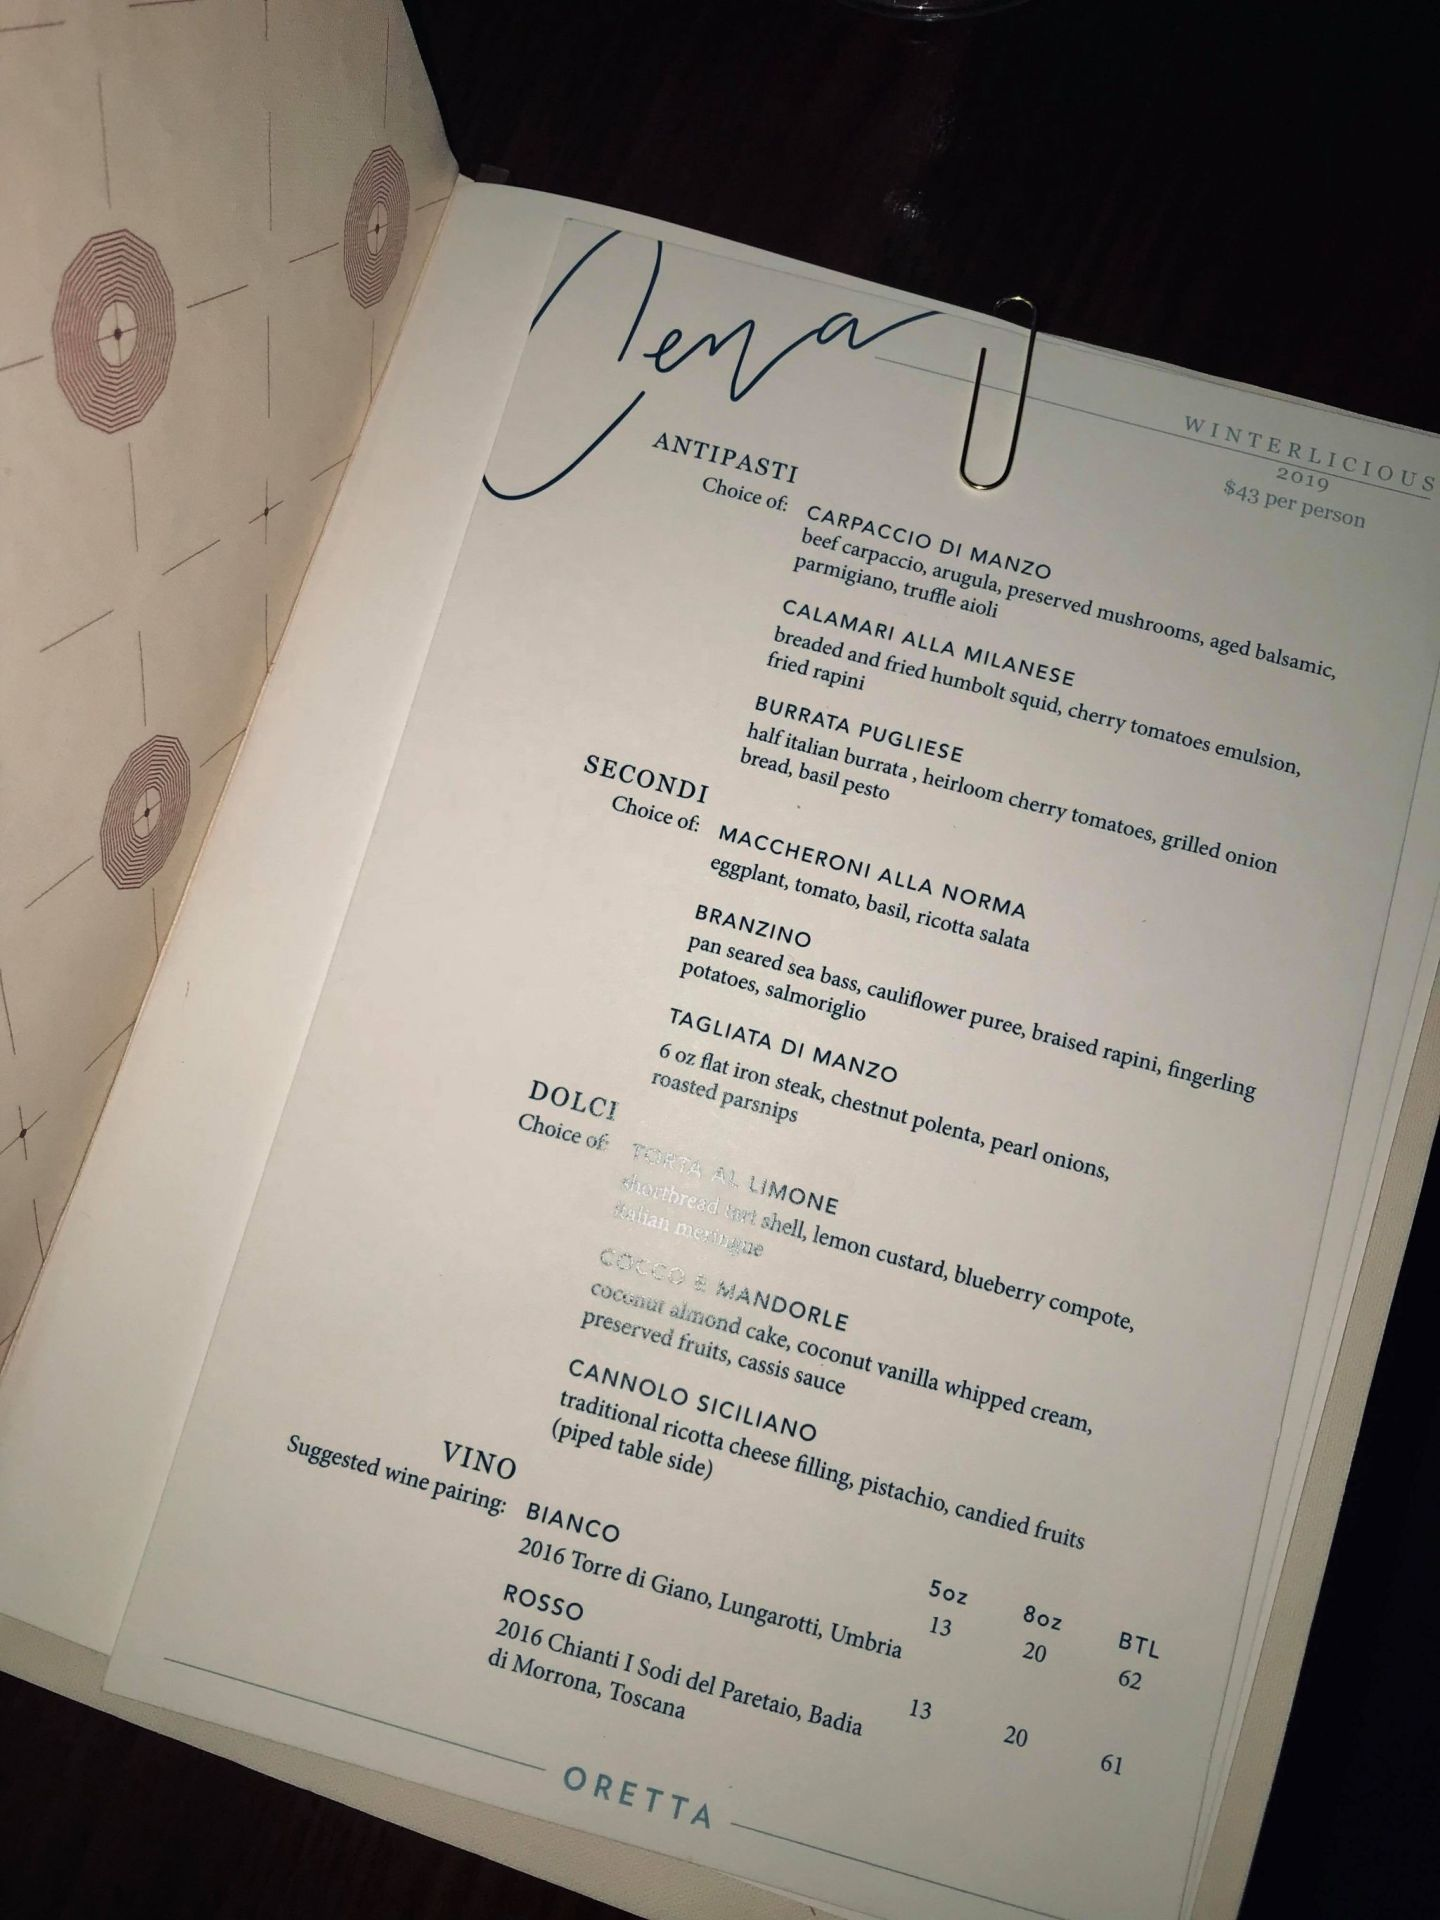 winterlicious menu 2019